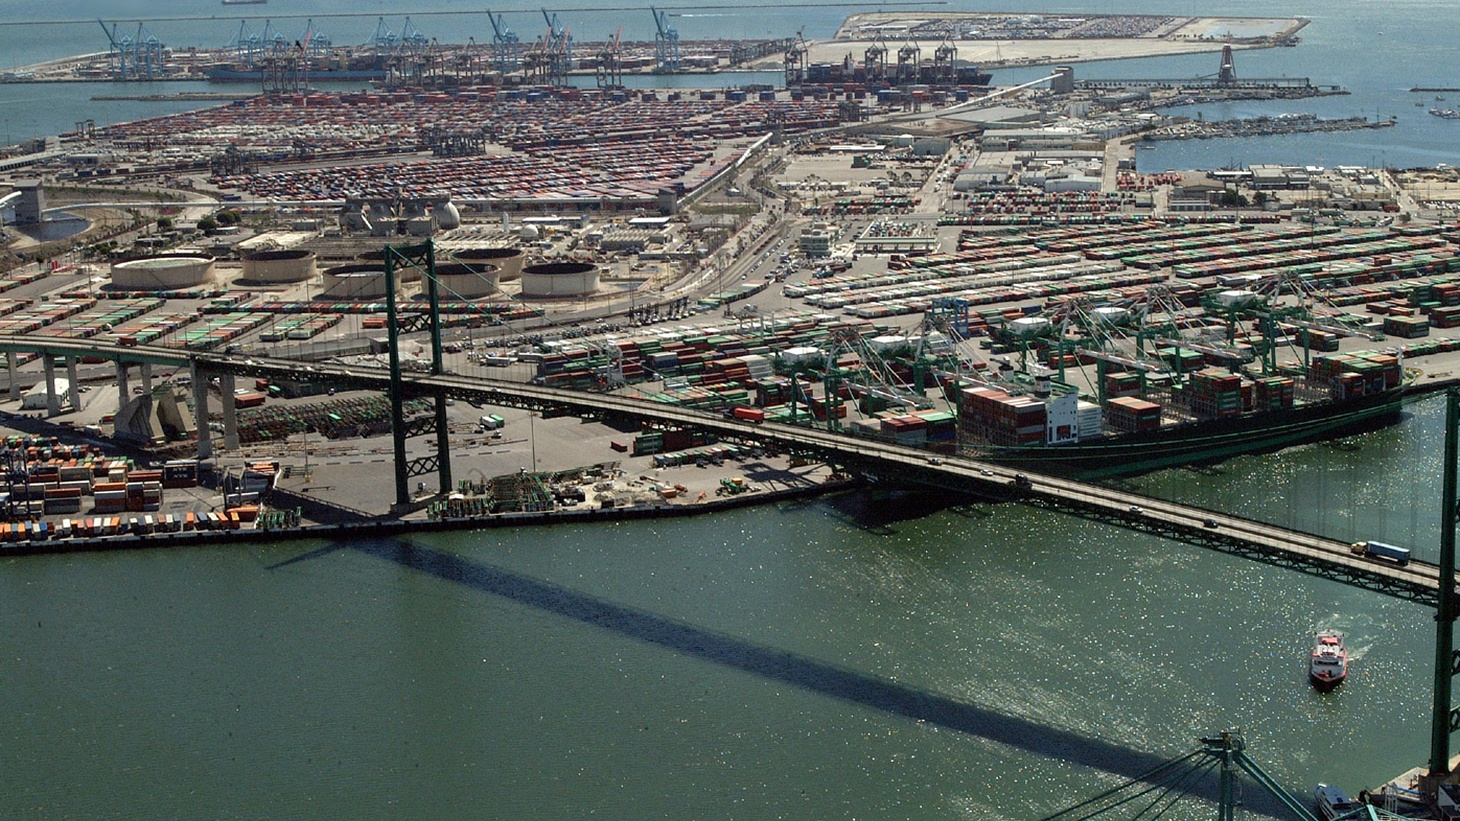 A decade ago, officials spent millions to convert Chinese ships at the Port of L.A. from diesel to electric power. But then the ships stopped using the port. What can be done now to fix new concerns about air pollution in and around the port?